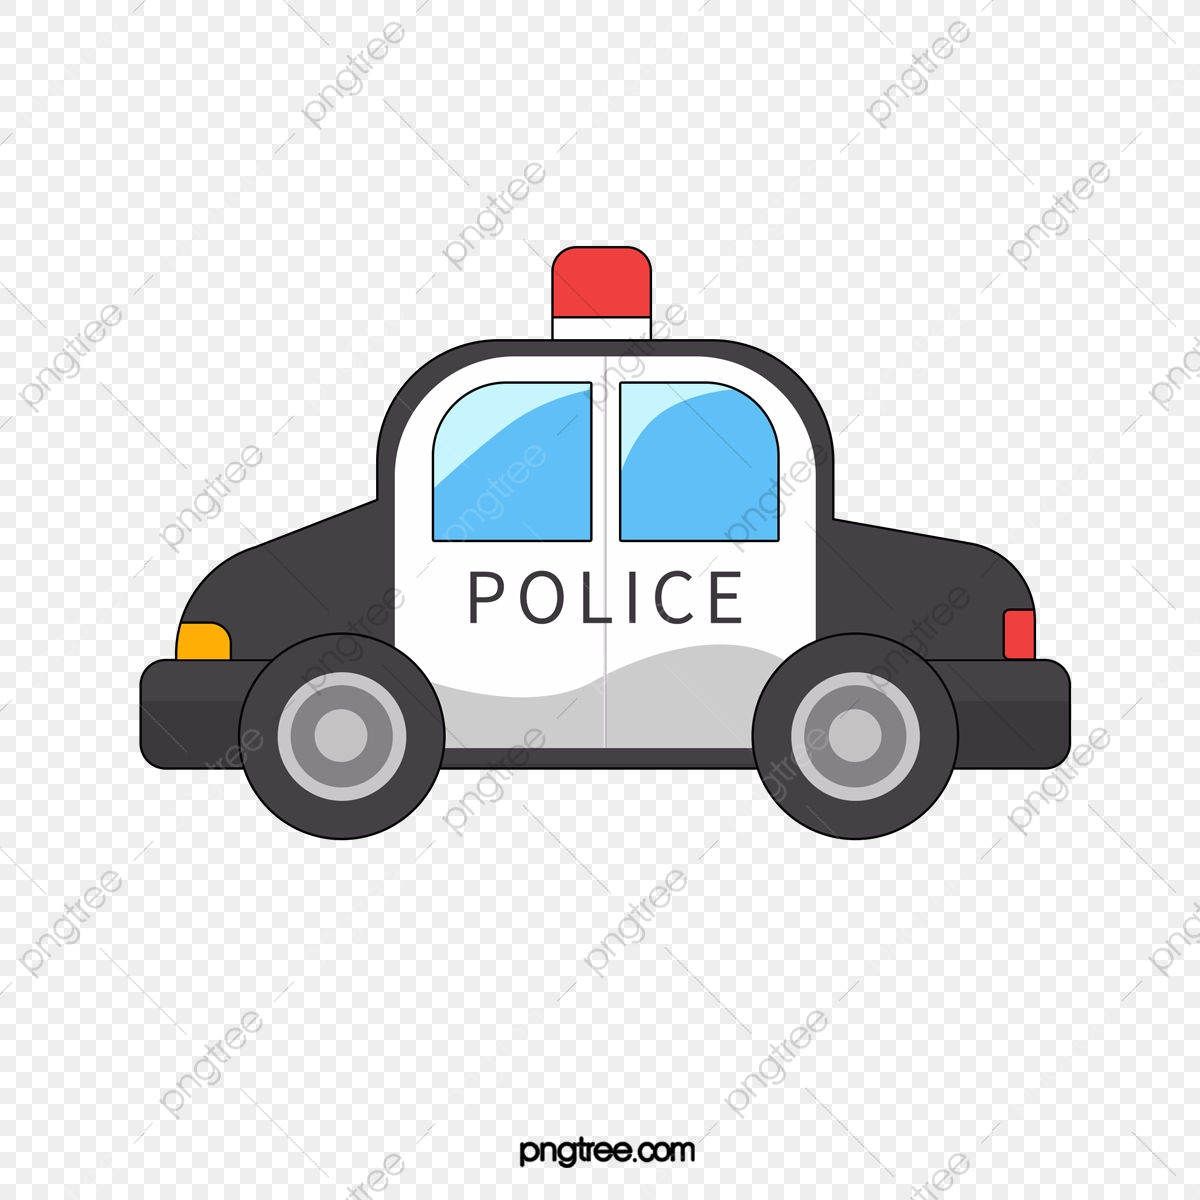 police car car clipart police clipart cartoon png transparent clipart image and psd file for free download https pngtree com freepng police car 1723668 html